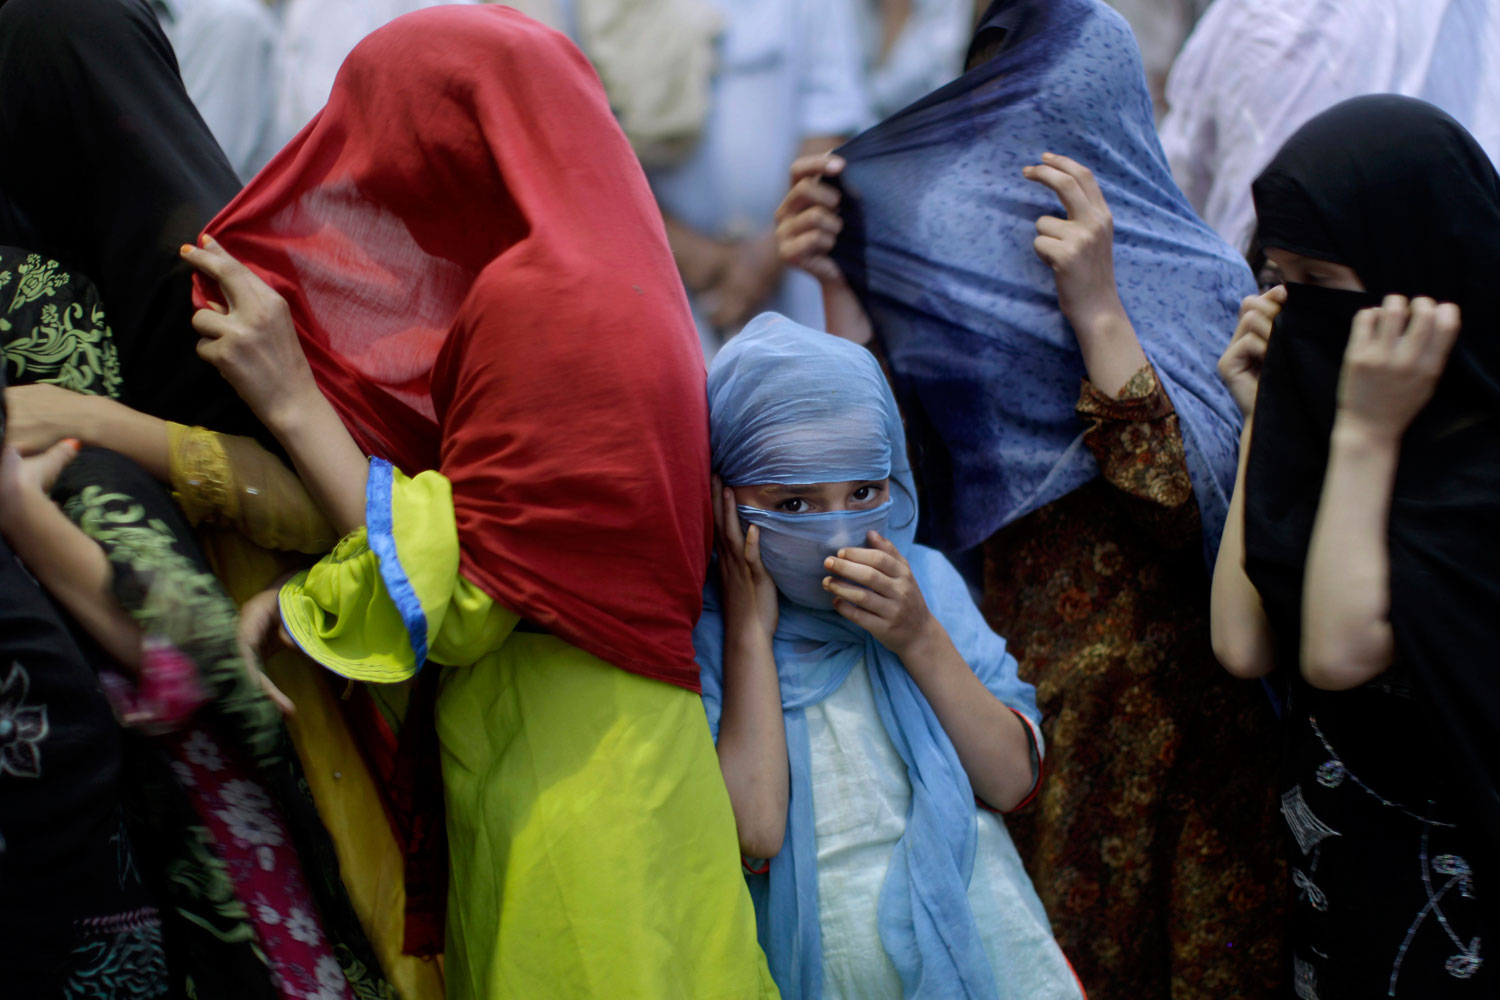 August19, 2011. A Pakistani girl in Rawalpindi lines up with other women to receive a donated meal during the month of Ramadan. The food is paid for by wealthy local Muslims who give money to feed the poor during Islam's holiest month.